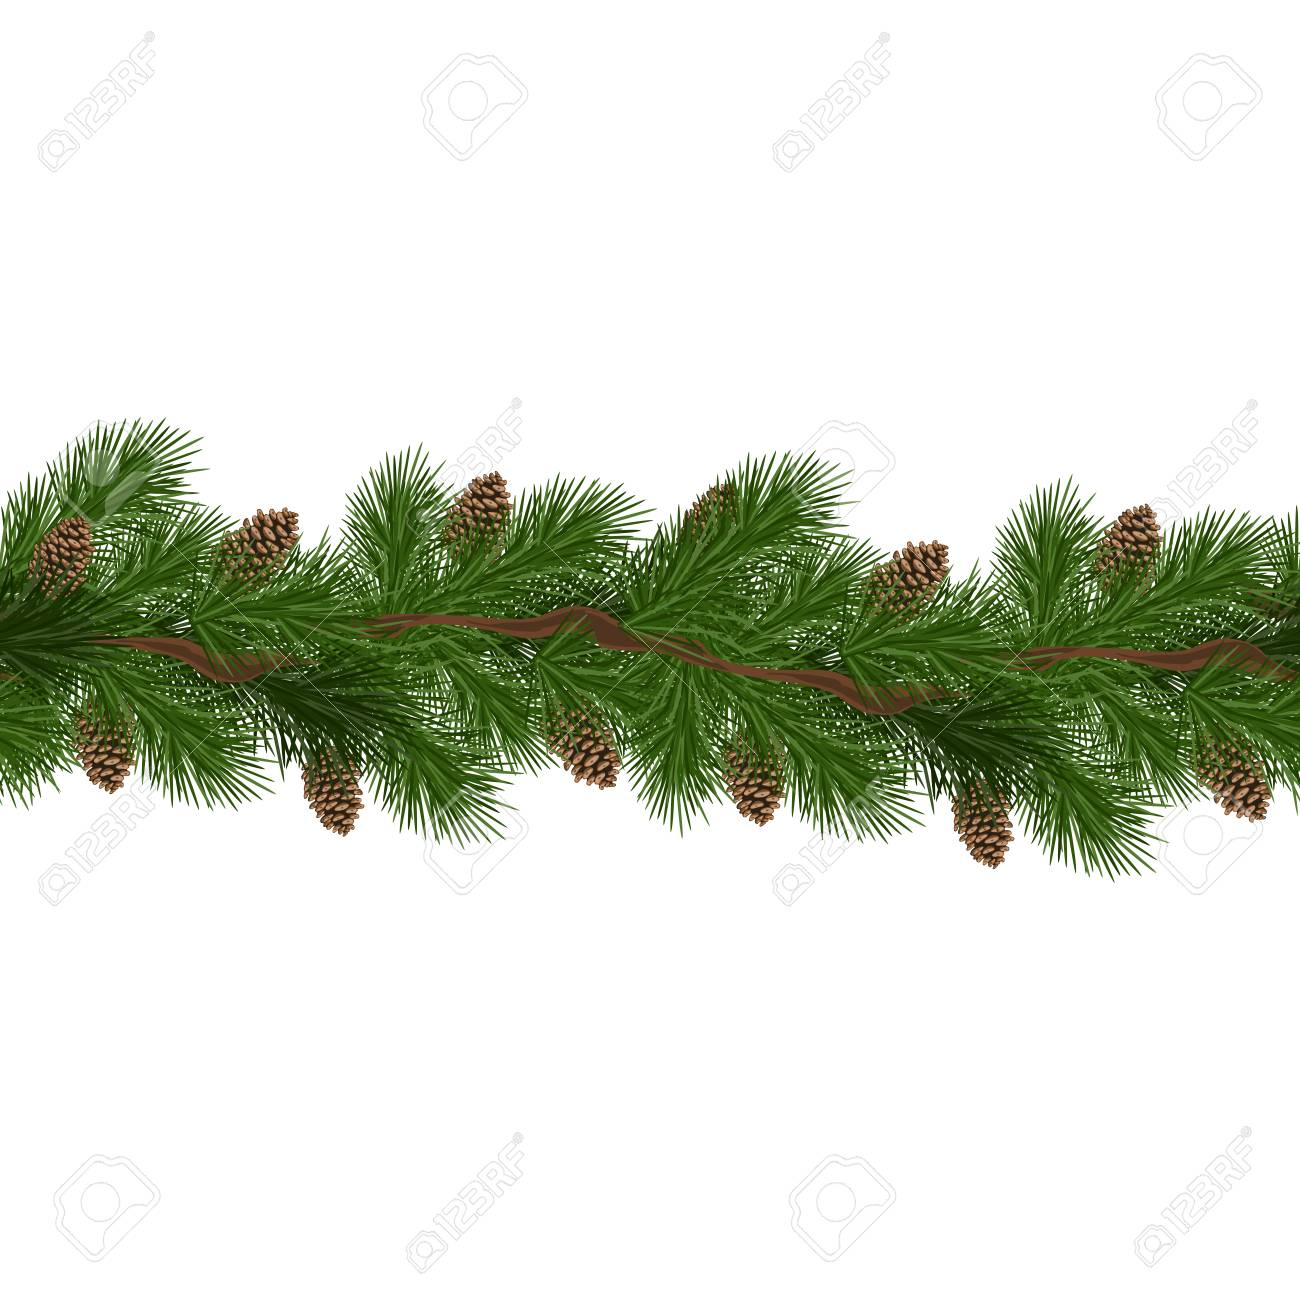 Christmas decorations with fir tree and pine cones. Design element for Christmas decoration. Vector illustration - 110480890